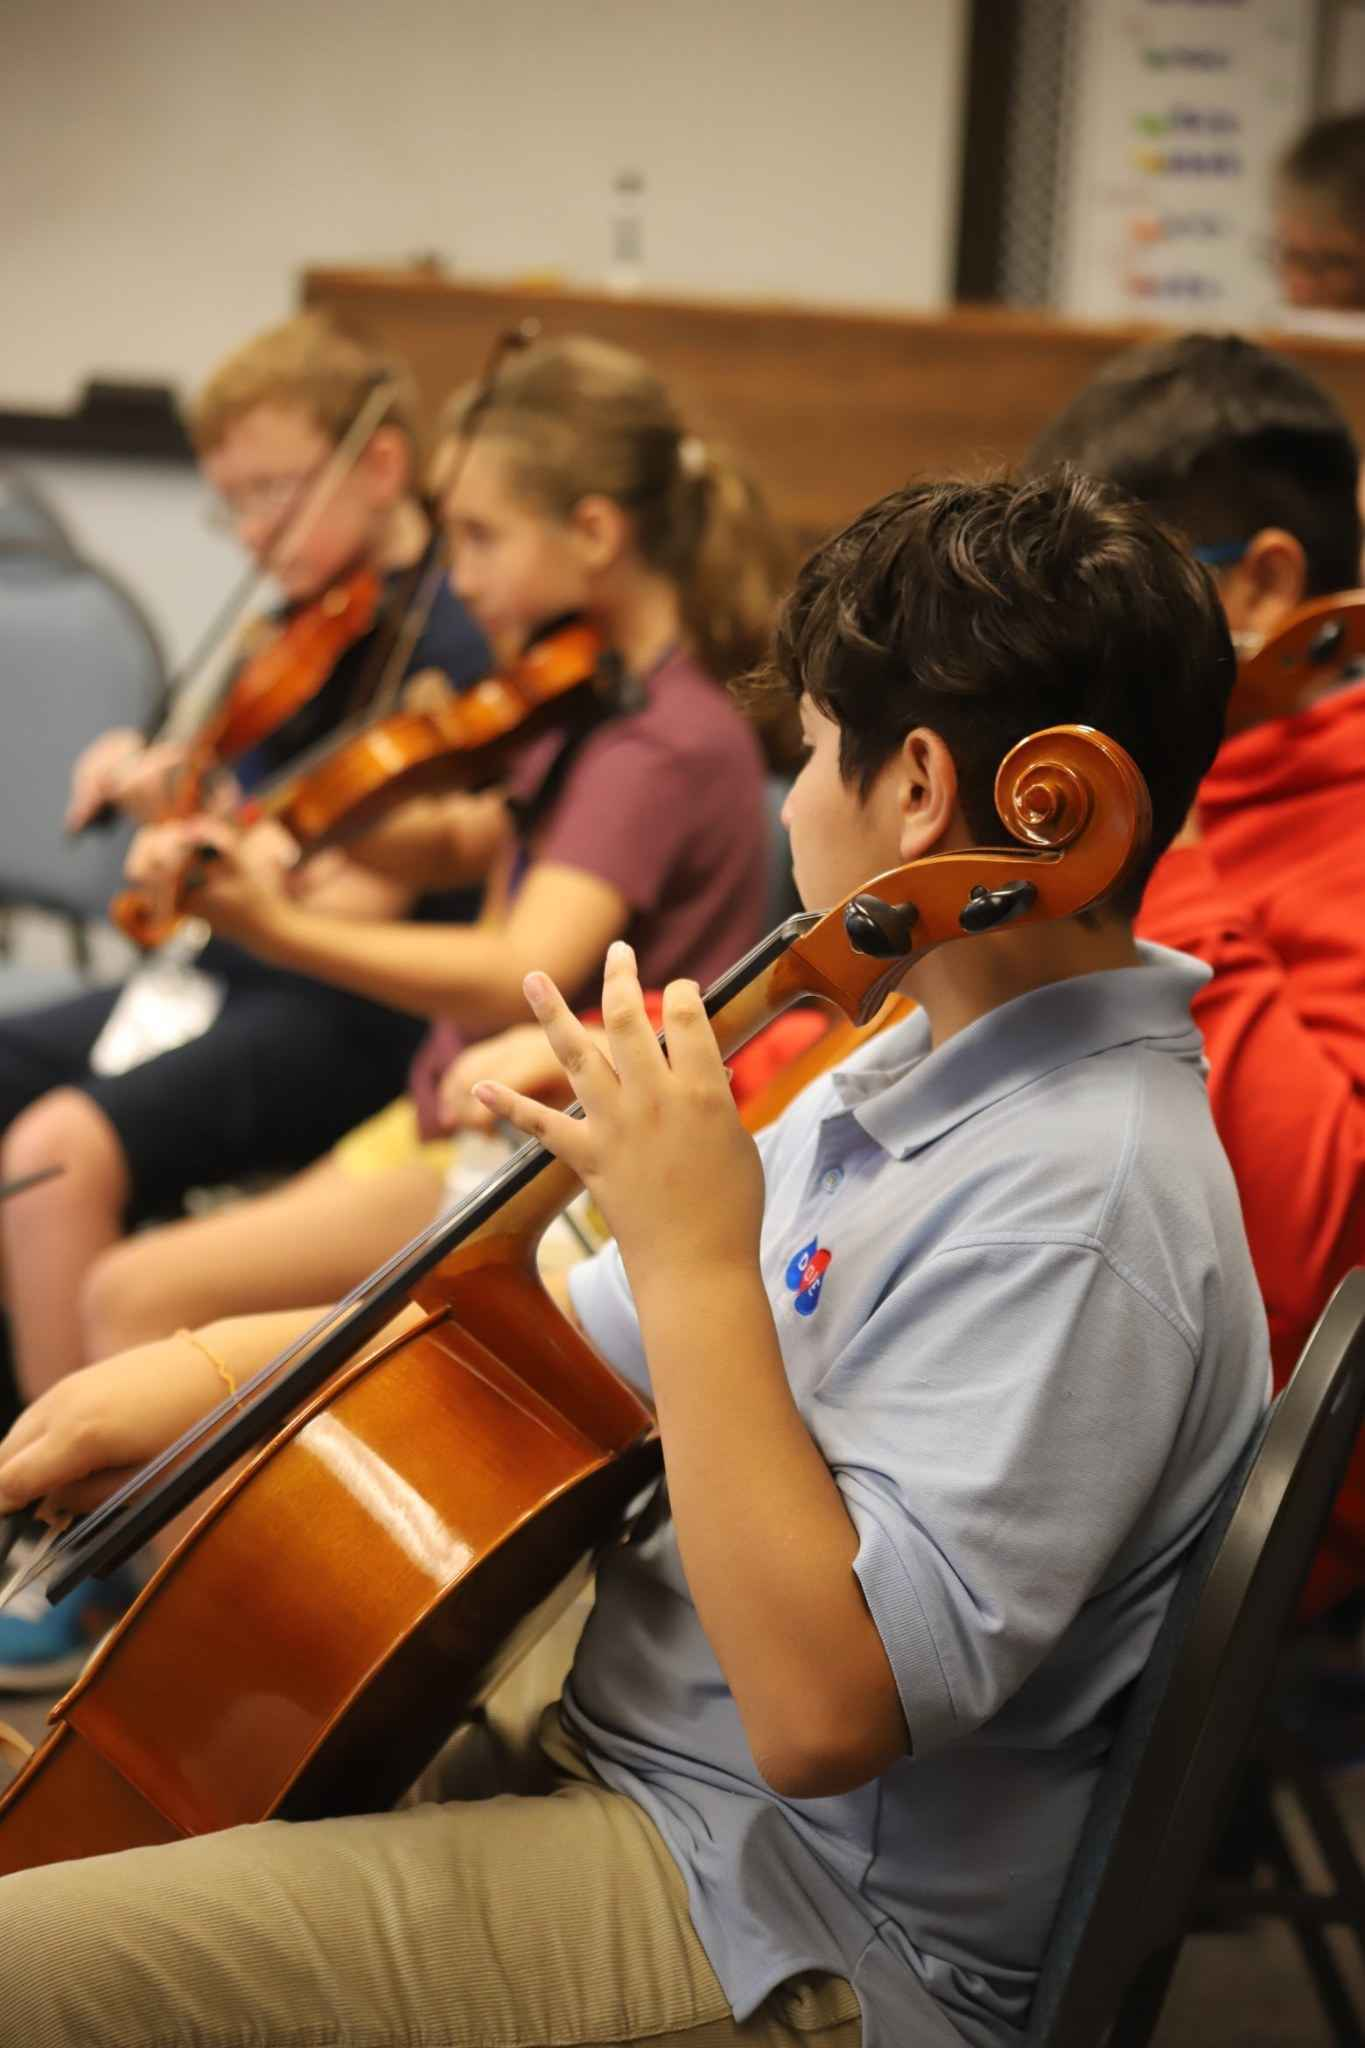 Support Sistema Tulsa's partnership with the Oklahoma Methodist Foundation image